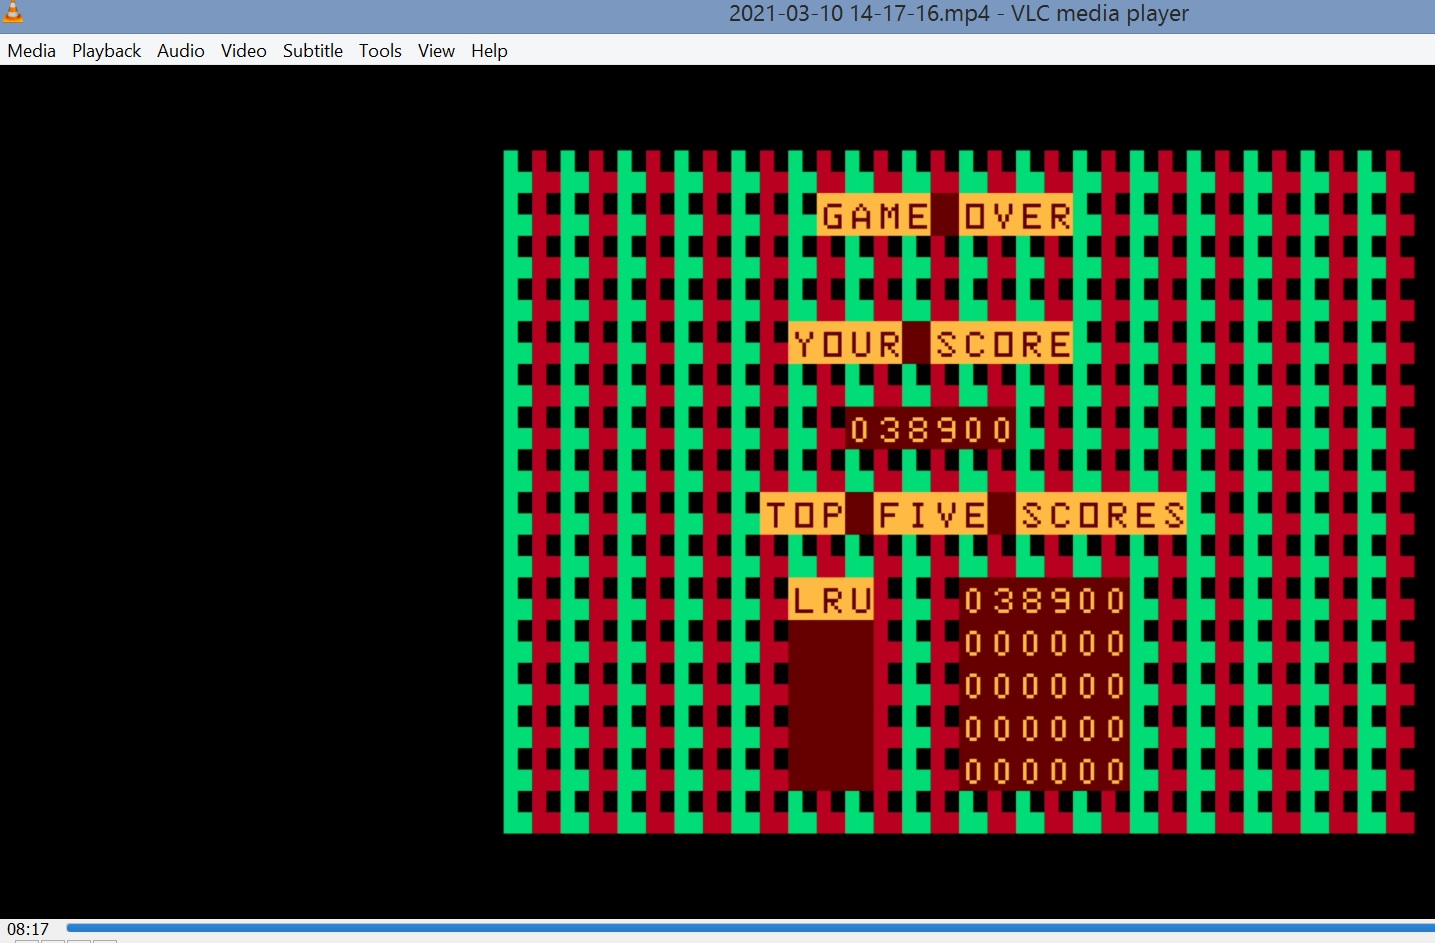 LuigiRuffolo: Storm Arrows (Dragon 32/64 Emulated) 38,900 points on 2021-03-10 07:34:54